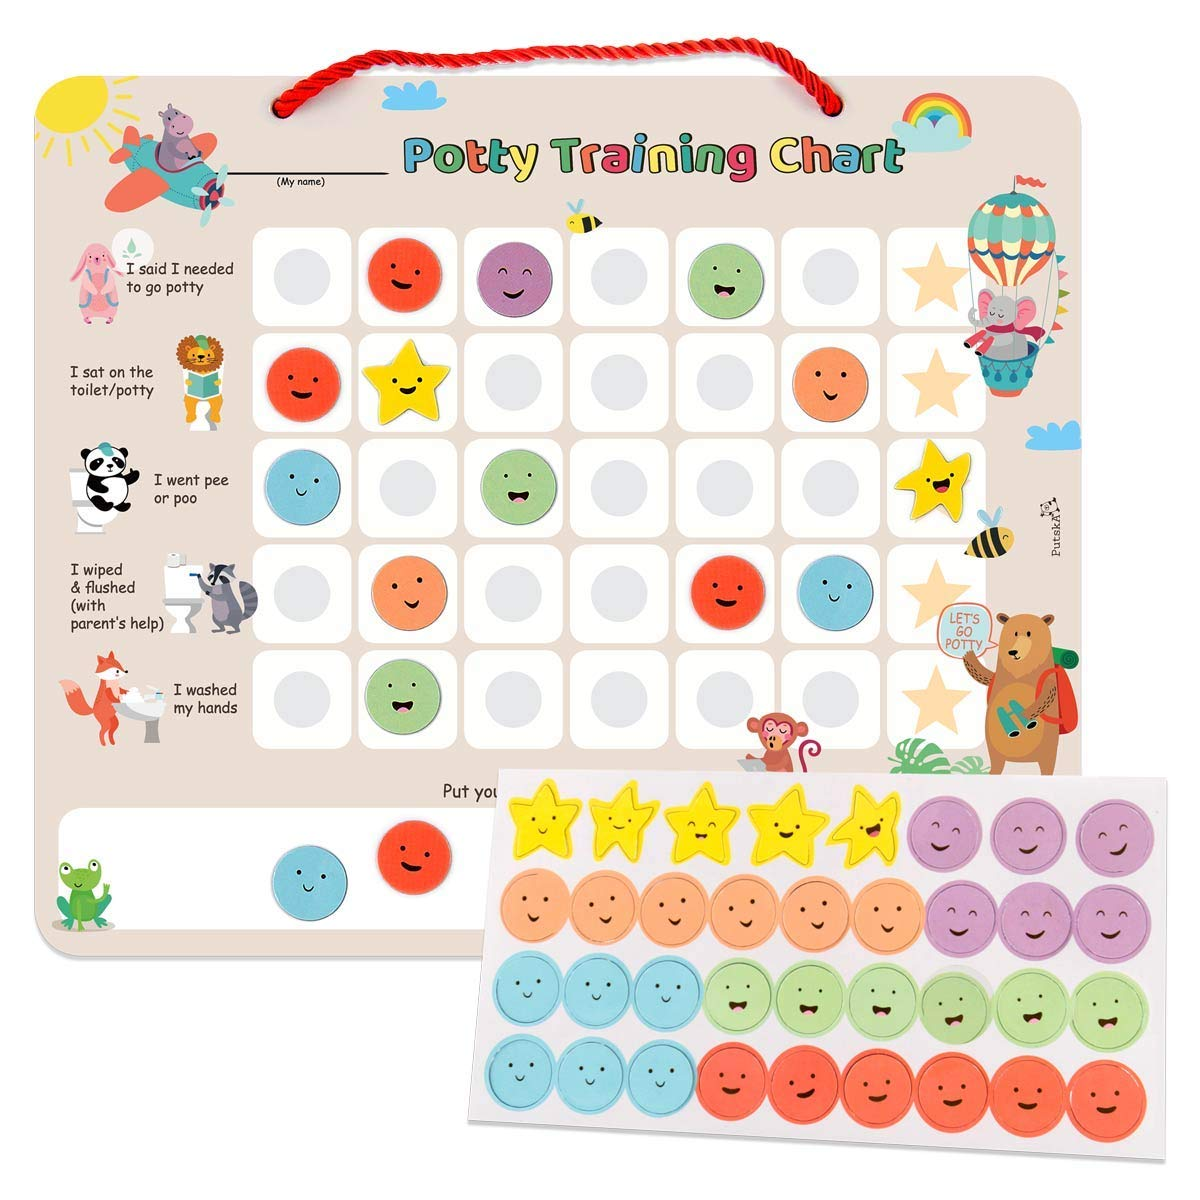 Putska Potty-Training-Magnetic-Reward-Chart für Toddlers - Potty Chart mit Multicolored Emoji & Star Stickers &Ndash; Motivational Toilet Training für Boys & Girls (Animal Theme)